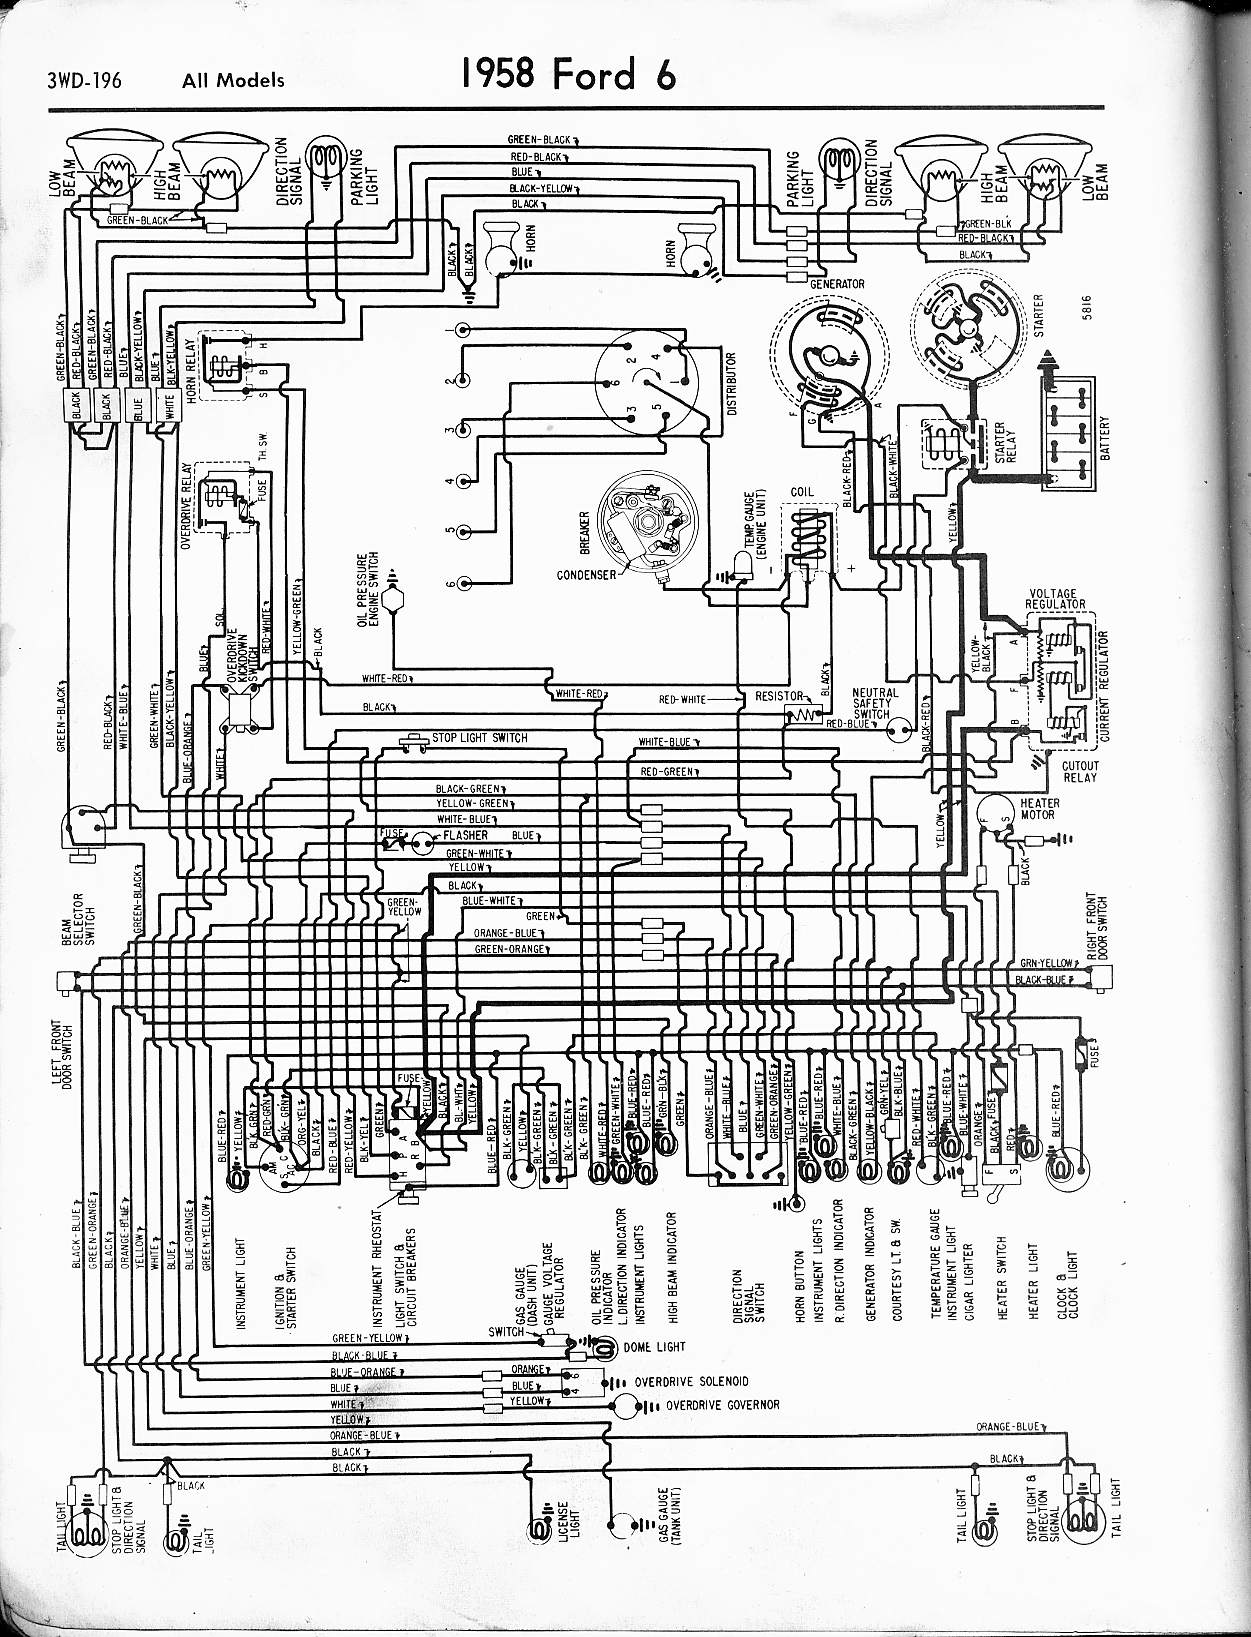 MWire5765 196 1960 ford wiring diagram 1960 ford f100 wiring diagram \u2022 wiring 1977 ford f100 wiring diagram at n-0.co